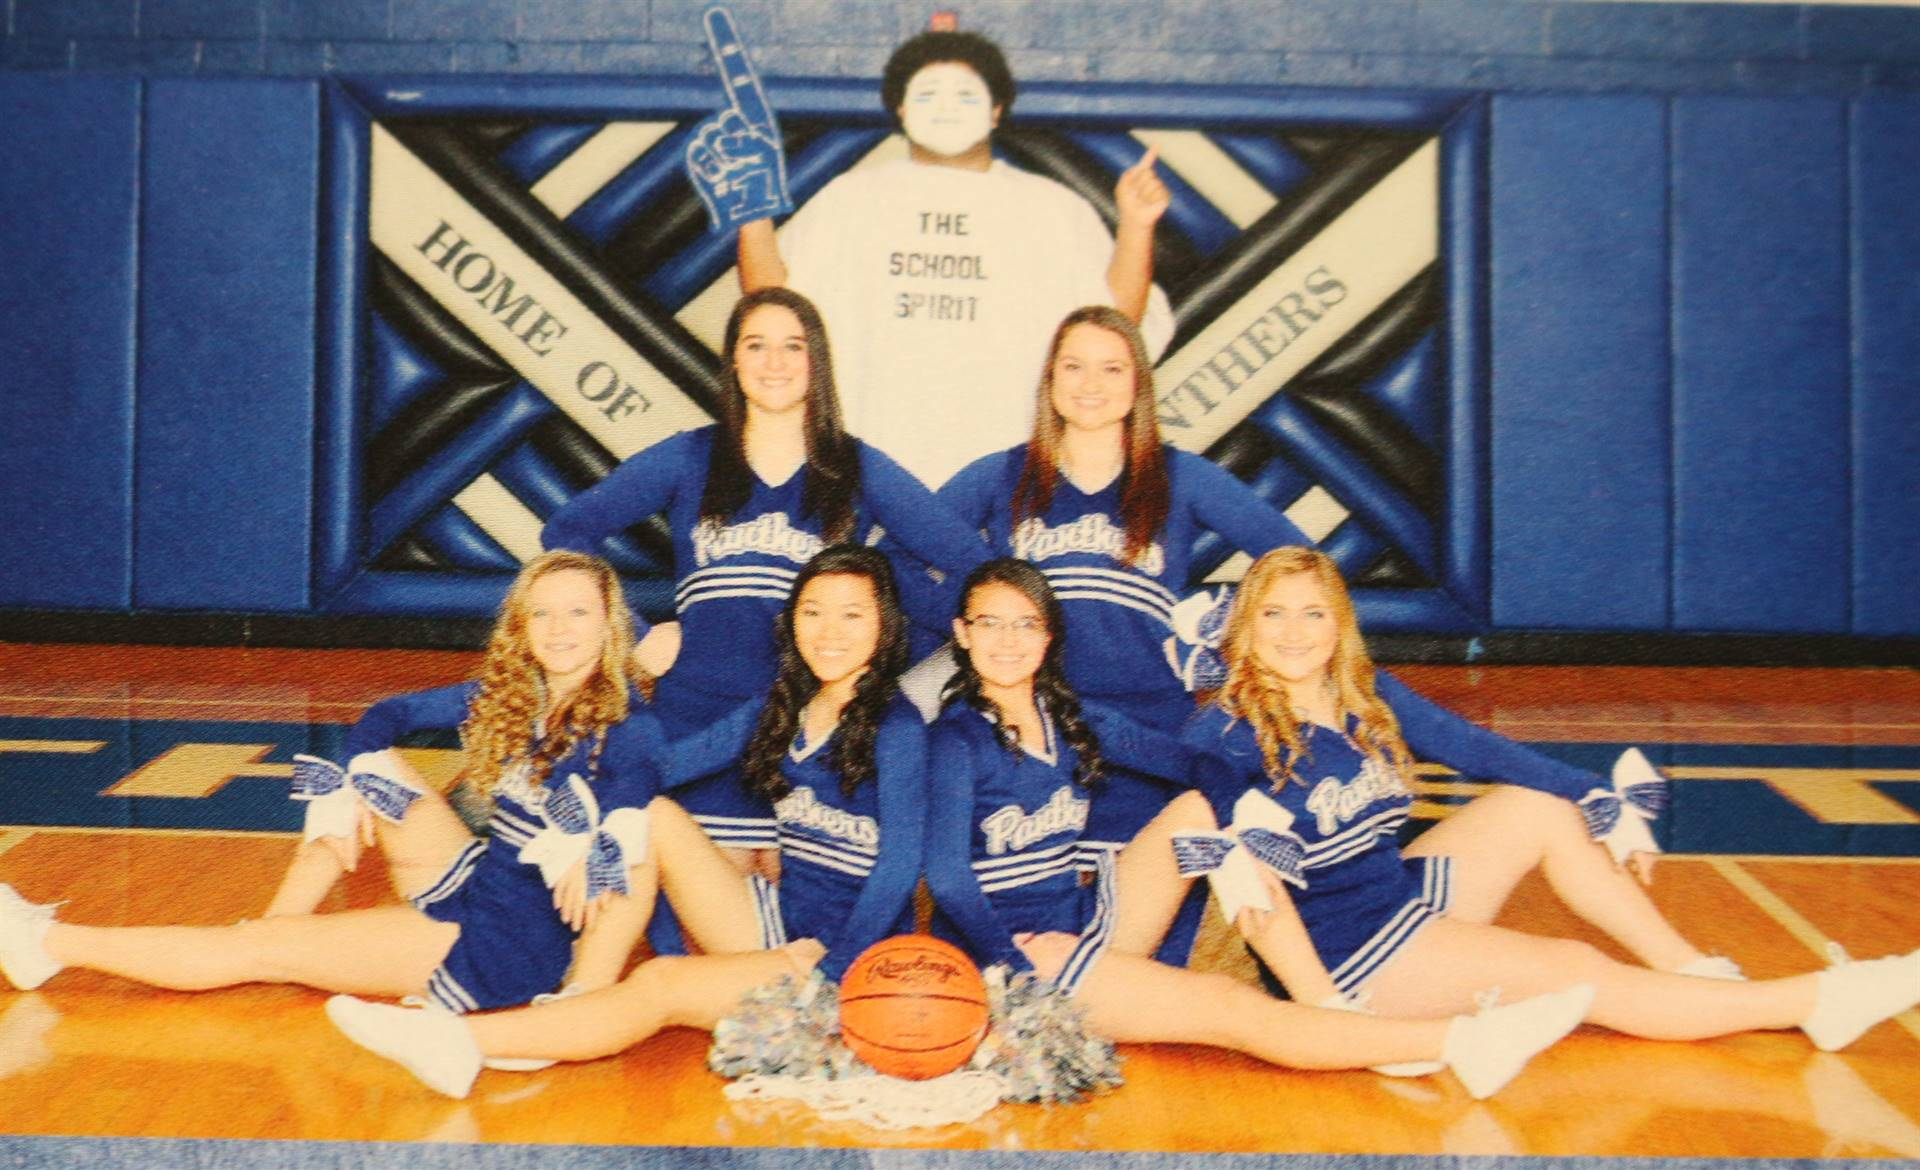 2016 basketball cheerleading